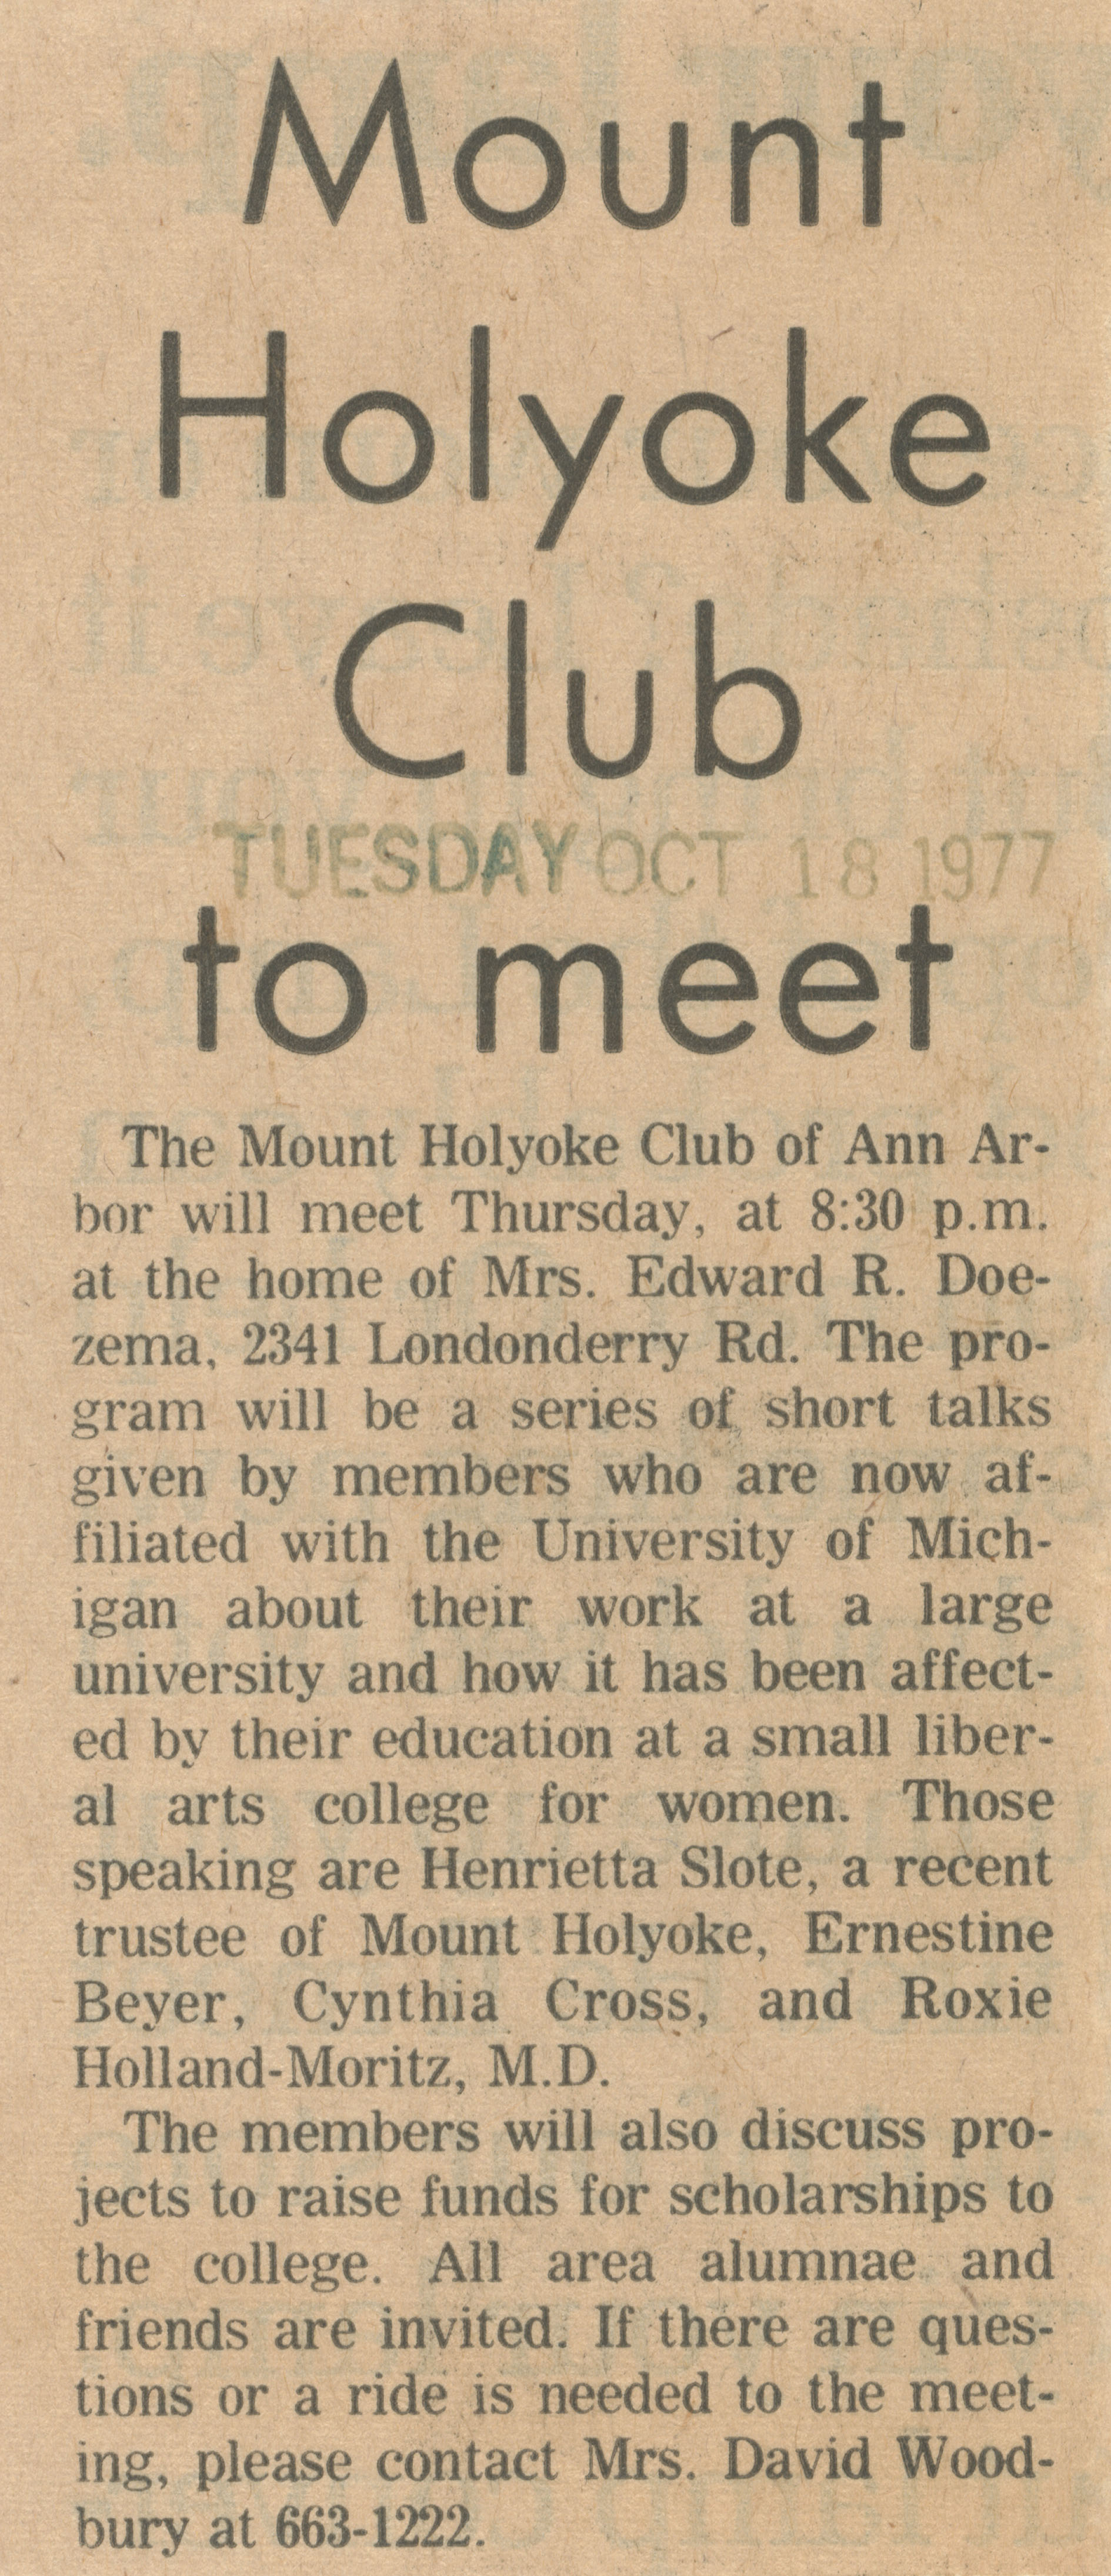 Mount Holyoke Club to Meet image